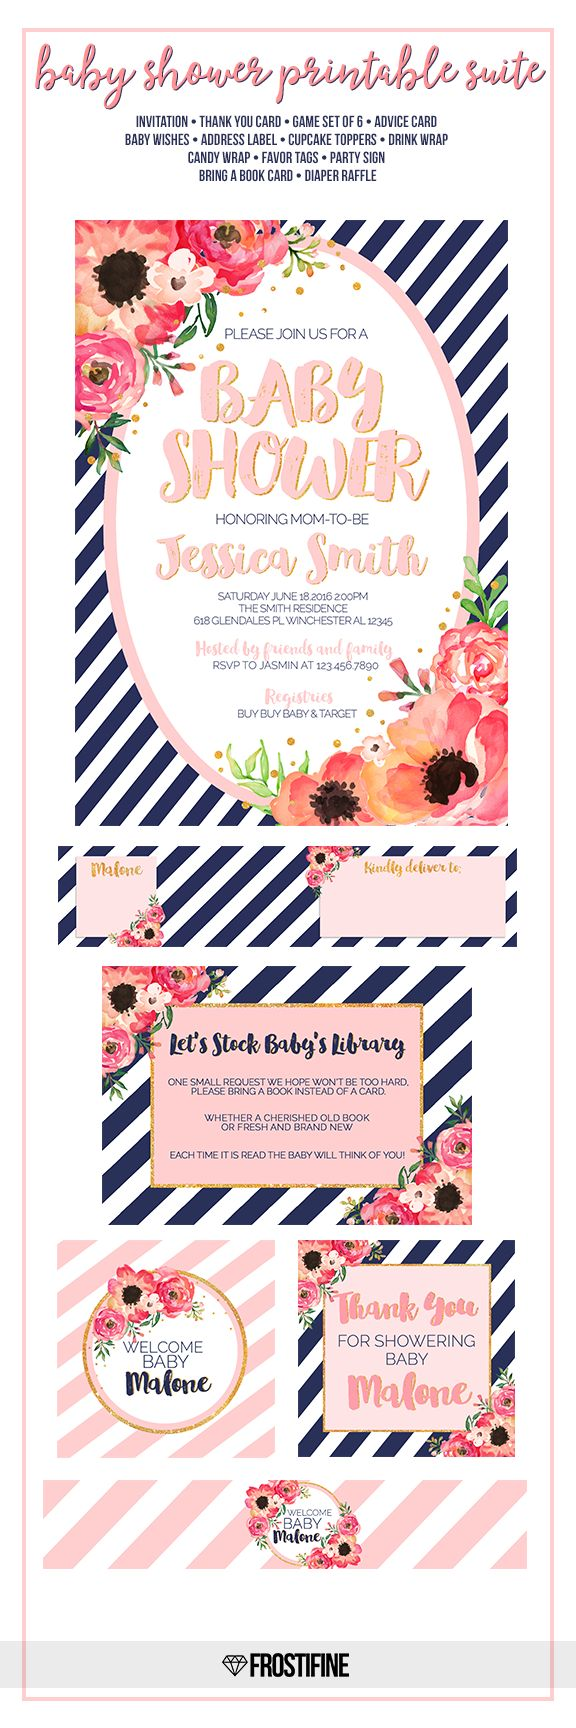 Navy blue and coral blush pink baby shower all-in-one suite with stripes,watercolor flowers and golden glitter details. Perfect baby shower set to invite and entertain your guests to most amazing party of the year. This kit includes Invitation and backer design, advice card, Baby wishes card, Game card set of 6, address labels, cupcake toppers, drink wrap labels, candy wraps, favor tags, party sign, thank you card, bring a book card, diaper raffle. This set is personalized with your party…